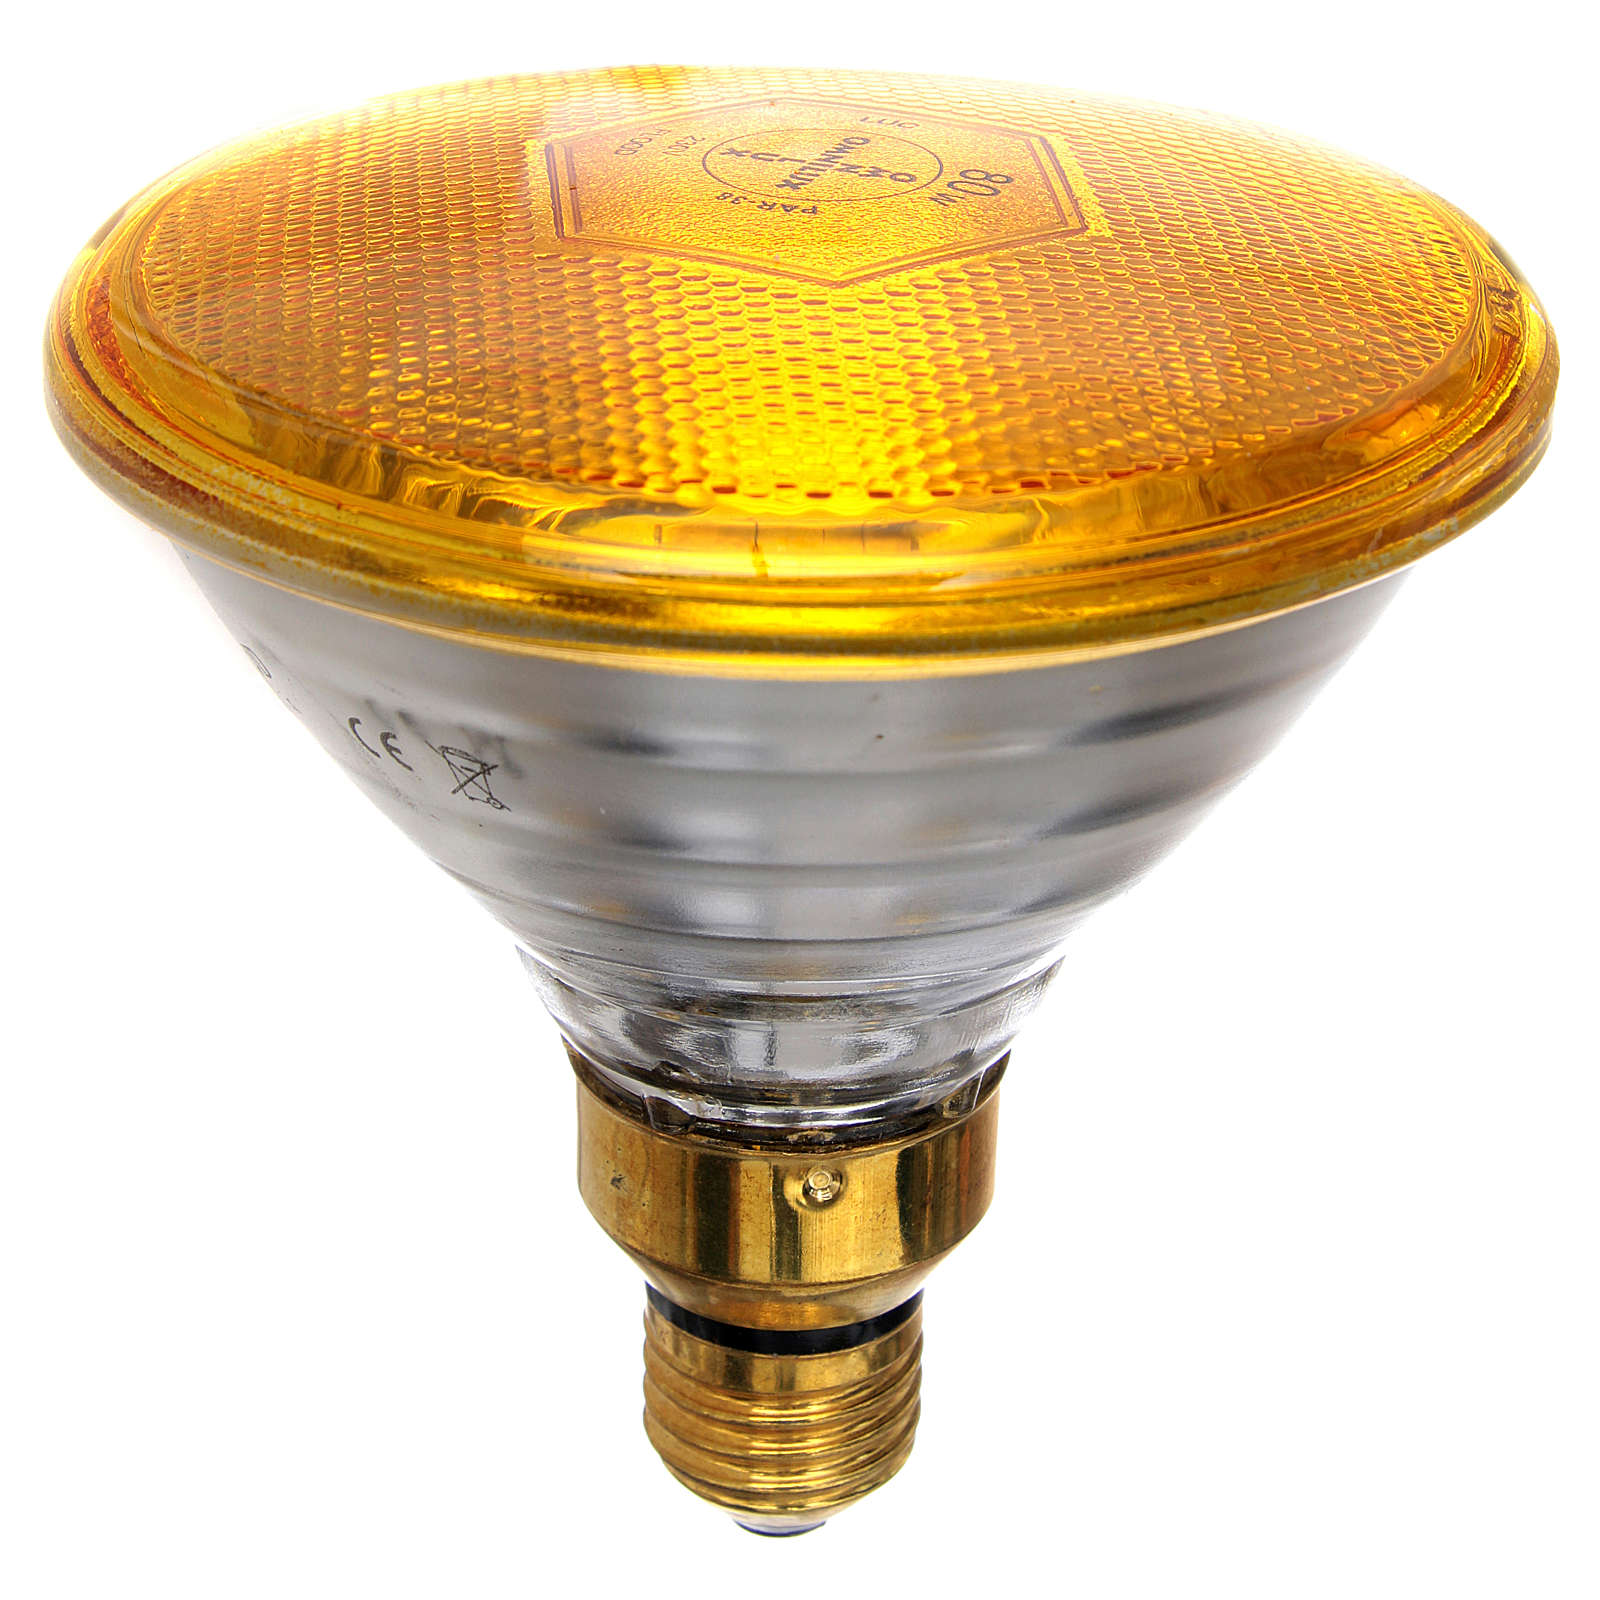 Coloured light bulb 80W, E27, yellow for nativities lighting 4